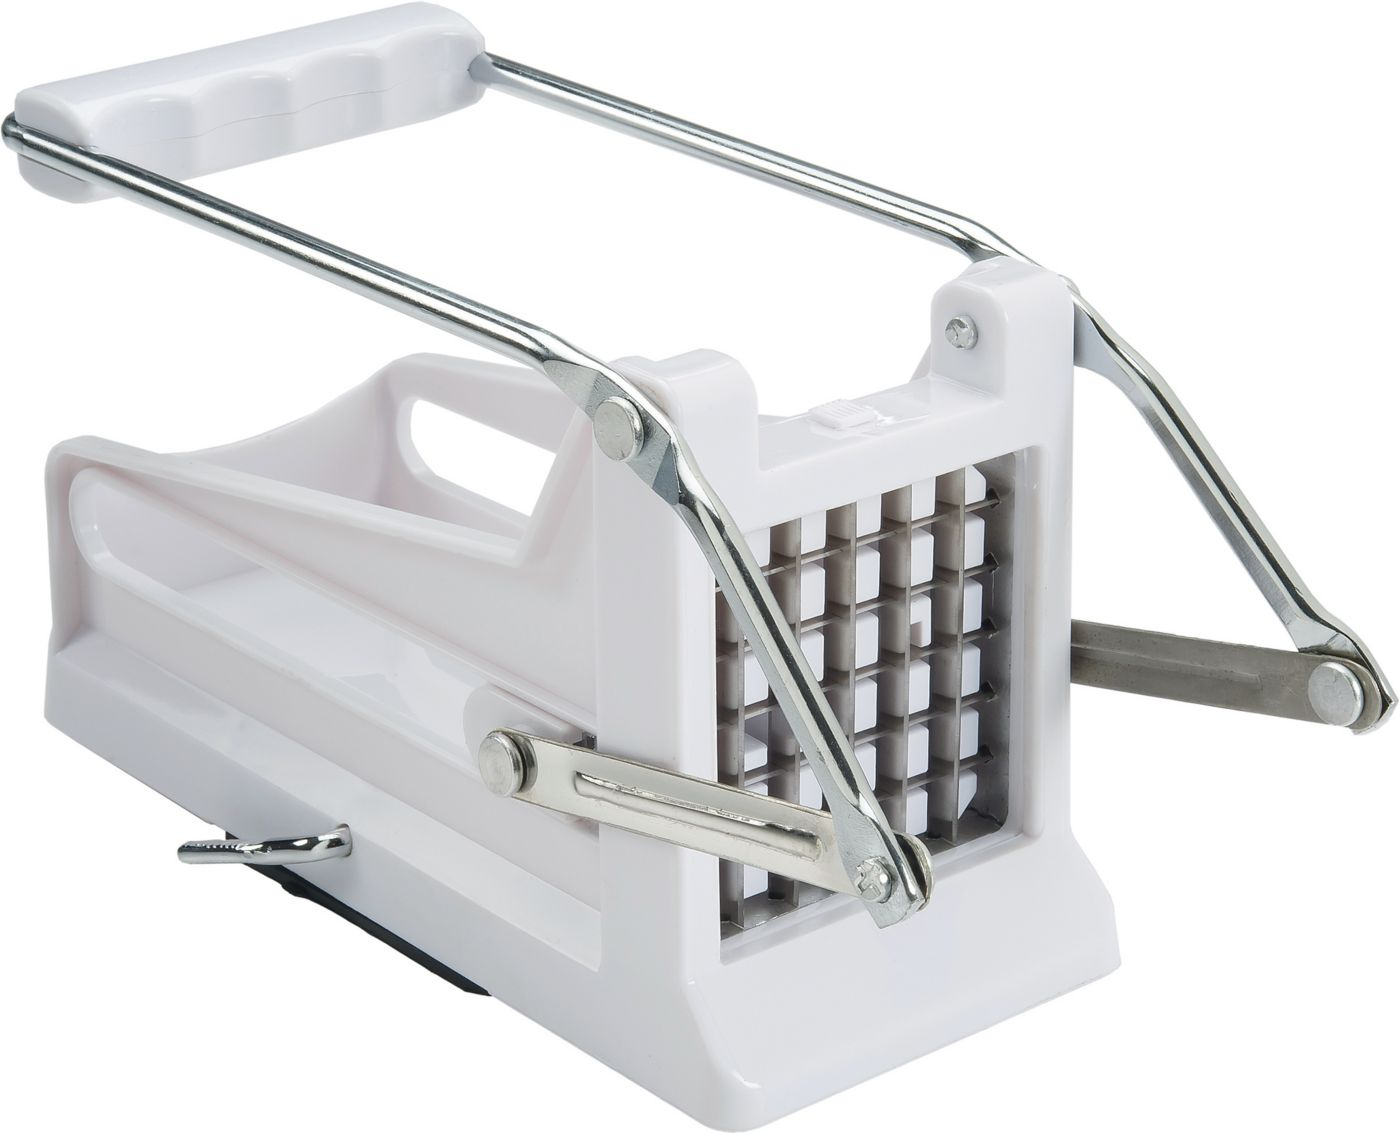 LEM French Fry Cutter